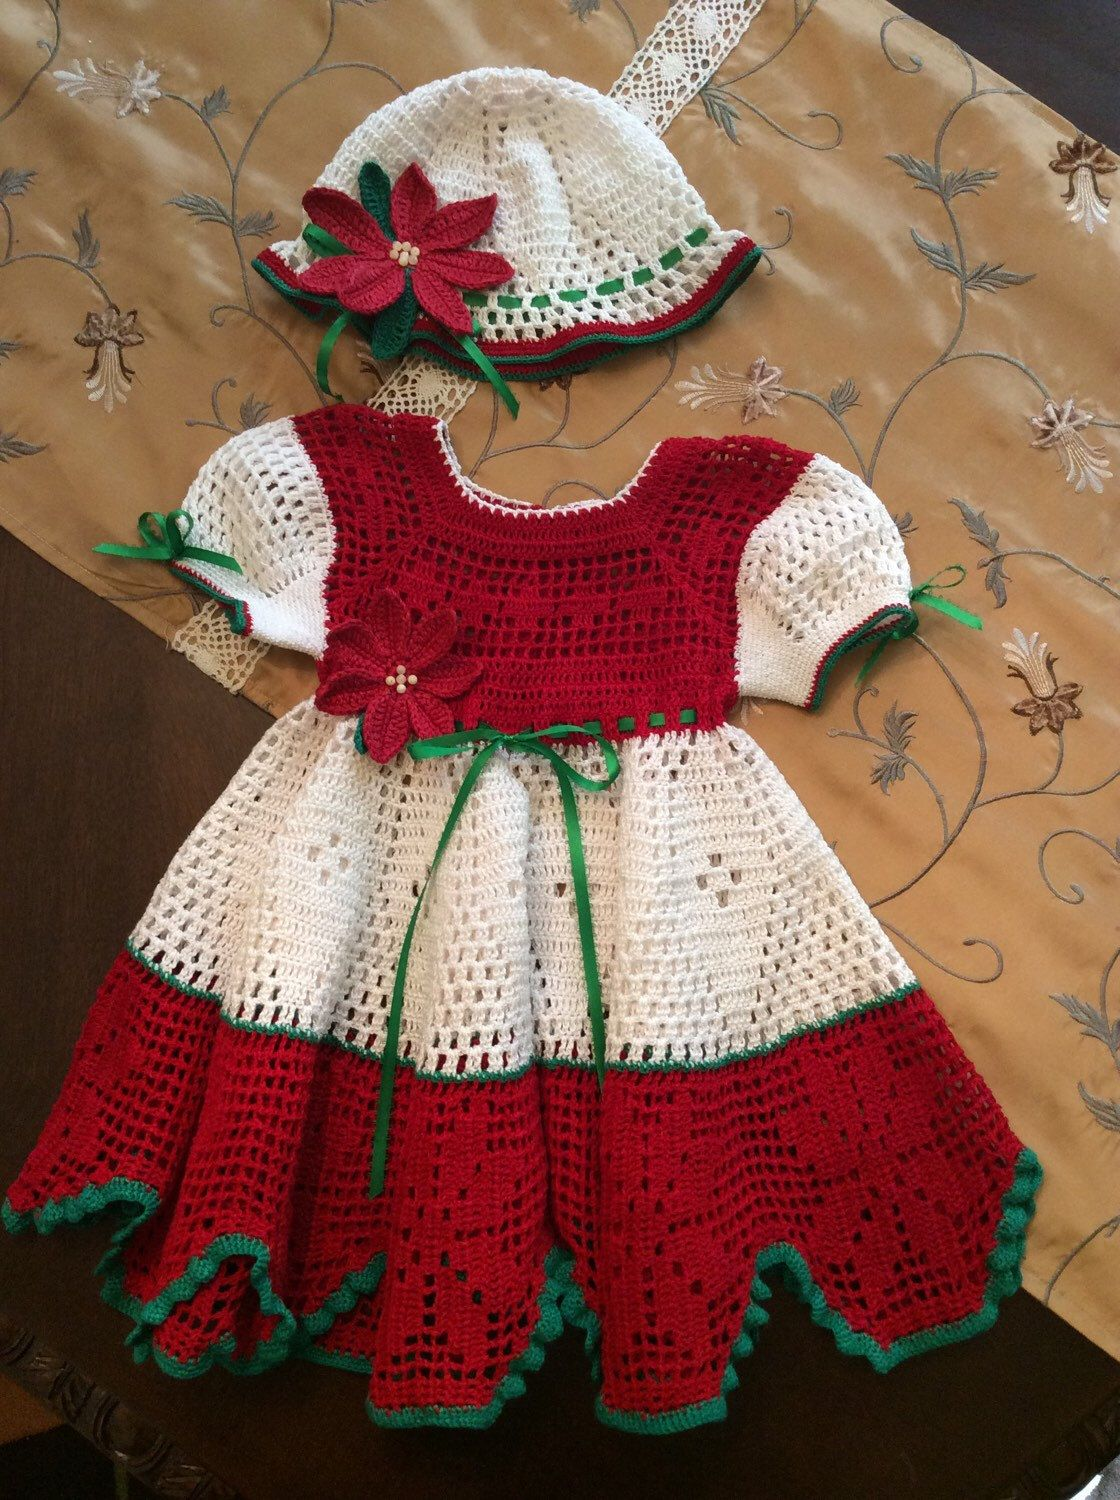 A personal favorite from my etsy shop httpsetsylisting a personal favorite from my etsy shop httpsetsylisting250810844hand crochet christmas dress with cap christmas dresses pinterest crochet bankloansurffo Gallery